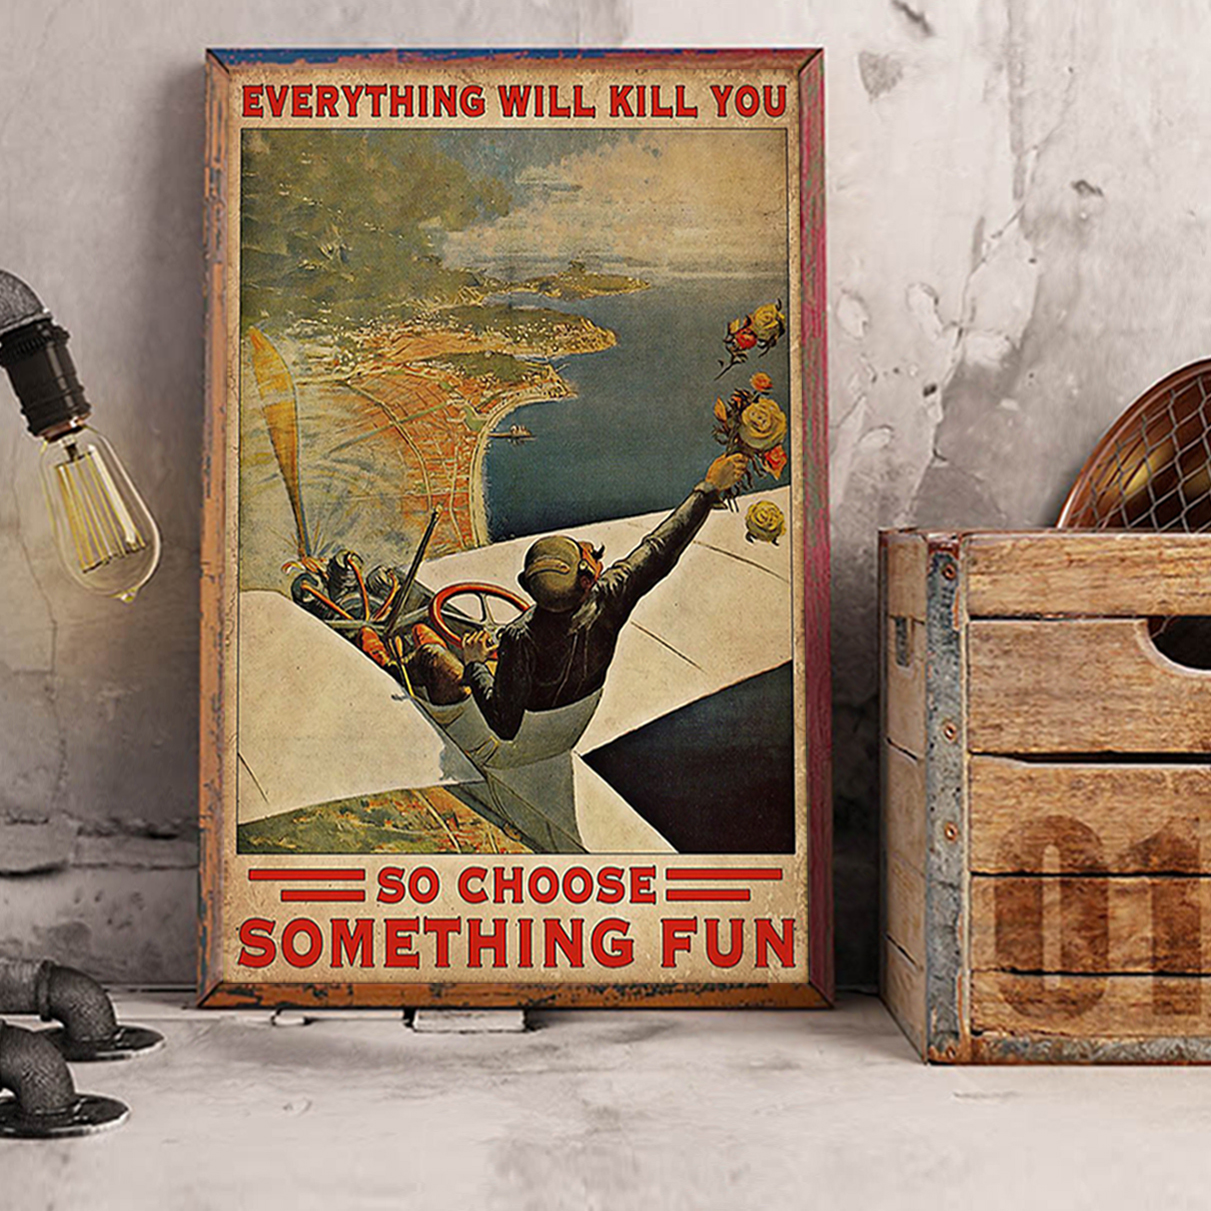 Everything will kill you so choose something fun pilot poster A3